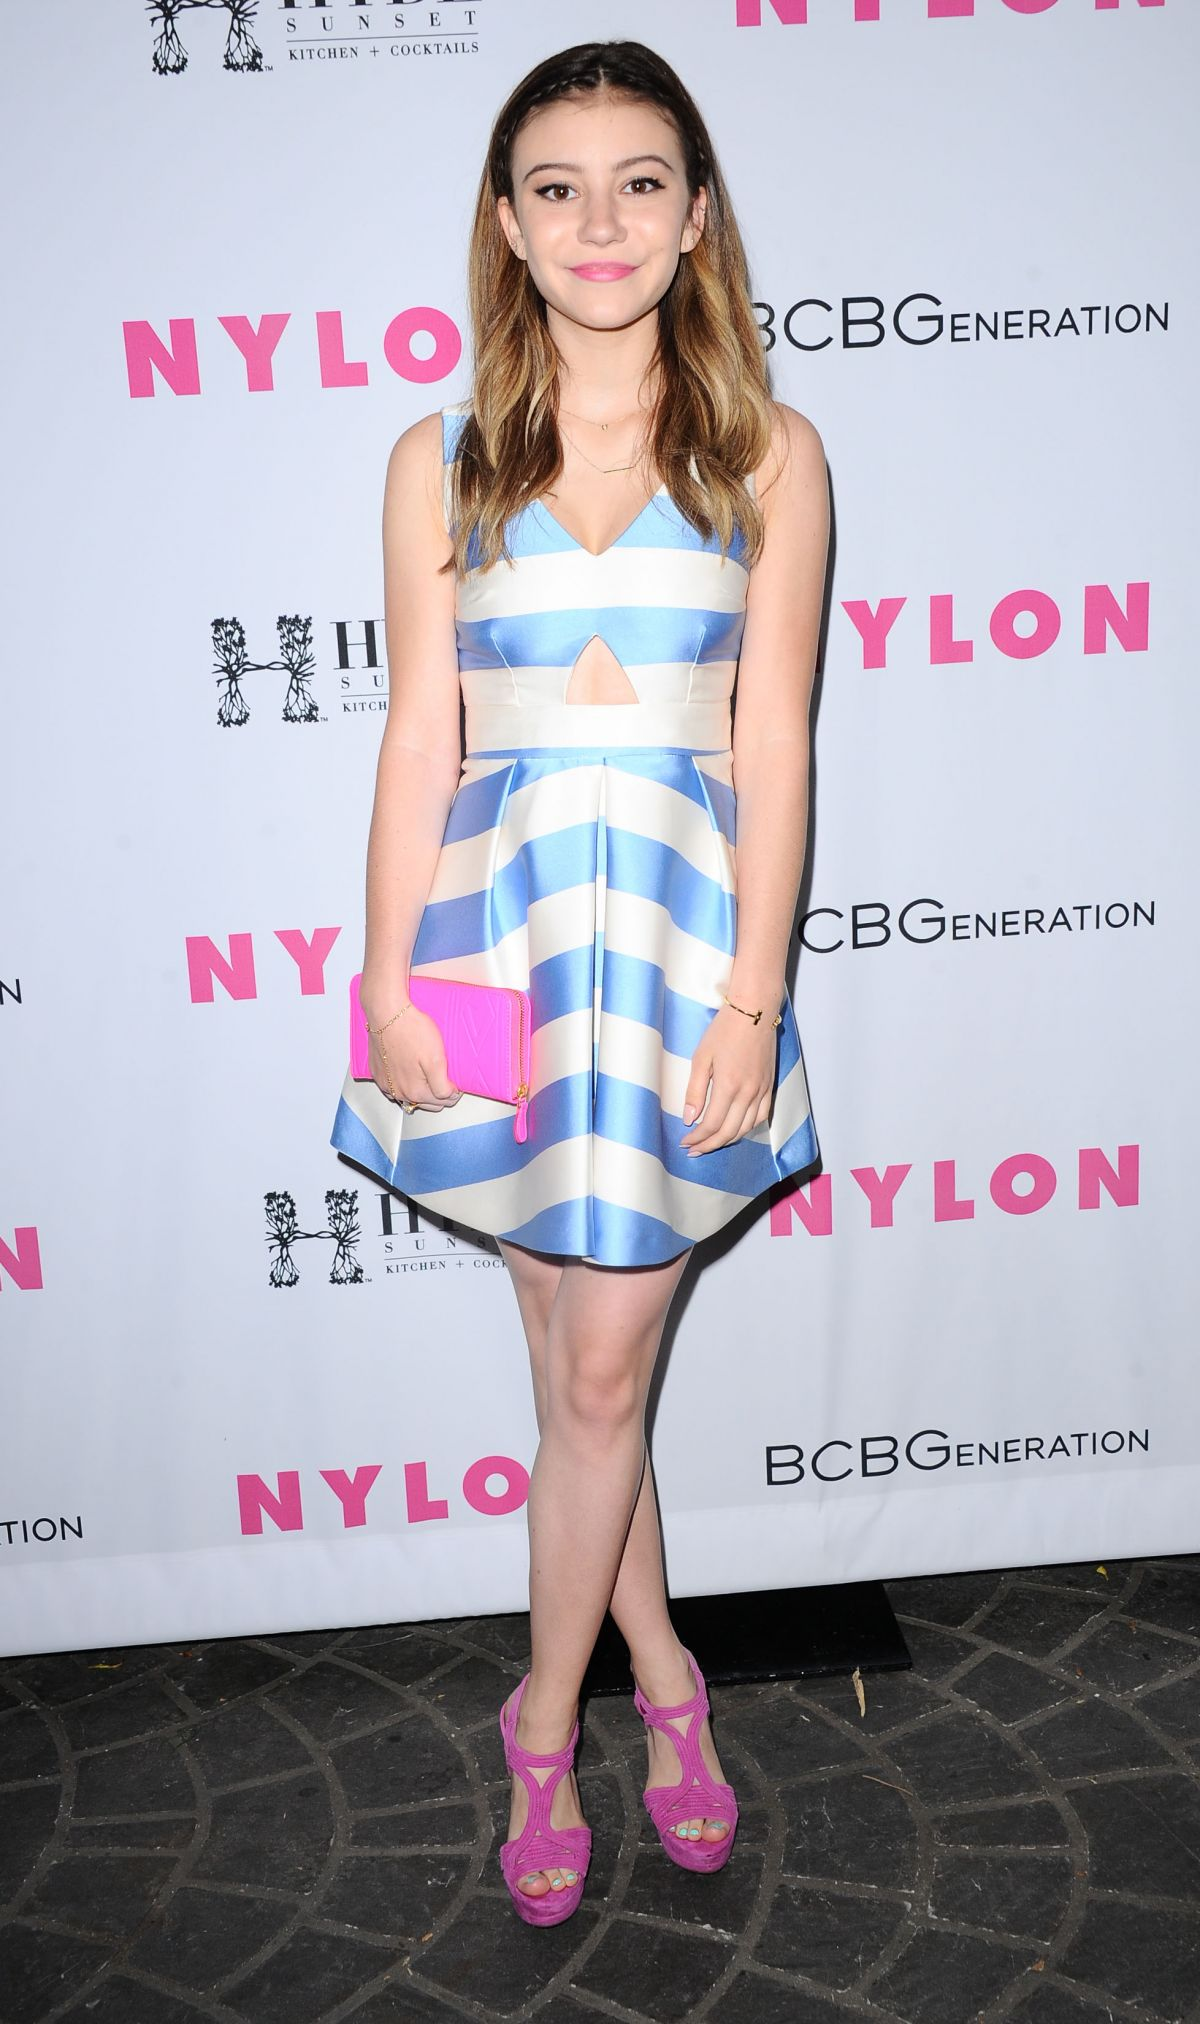 GENEVIEVE HANNELIUS at Nylon Young Hollywood Party in West Hollywood 05/12/2016